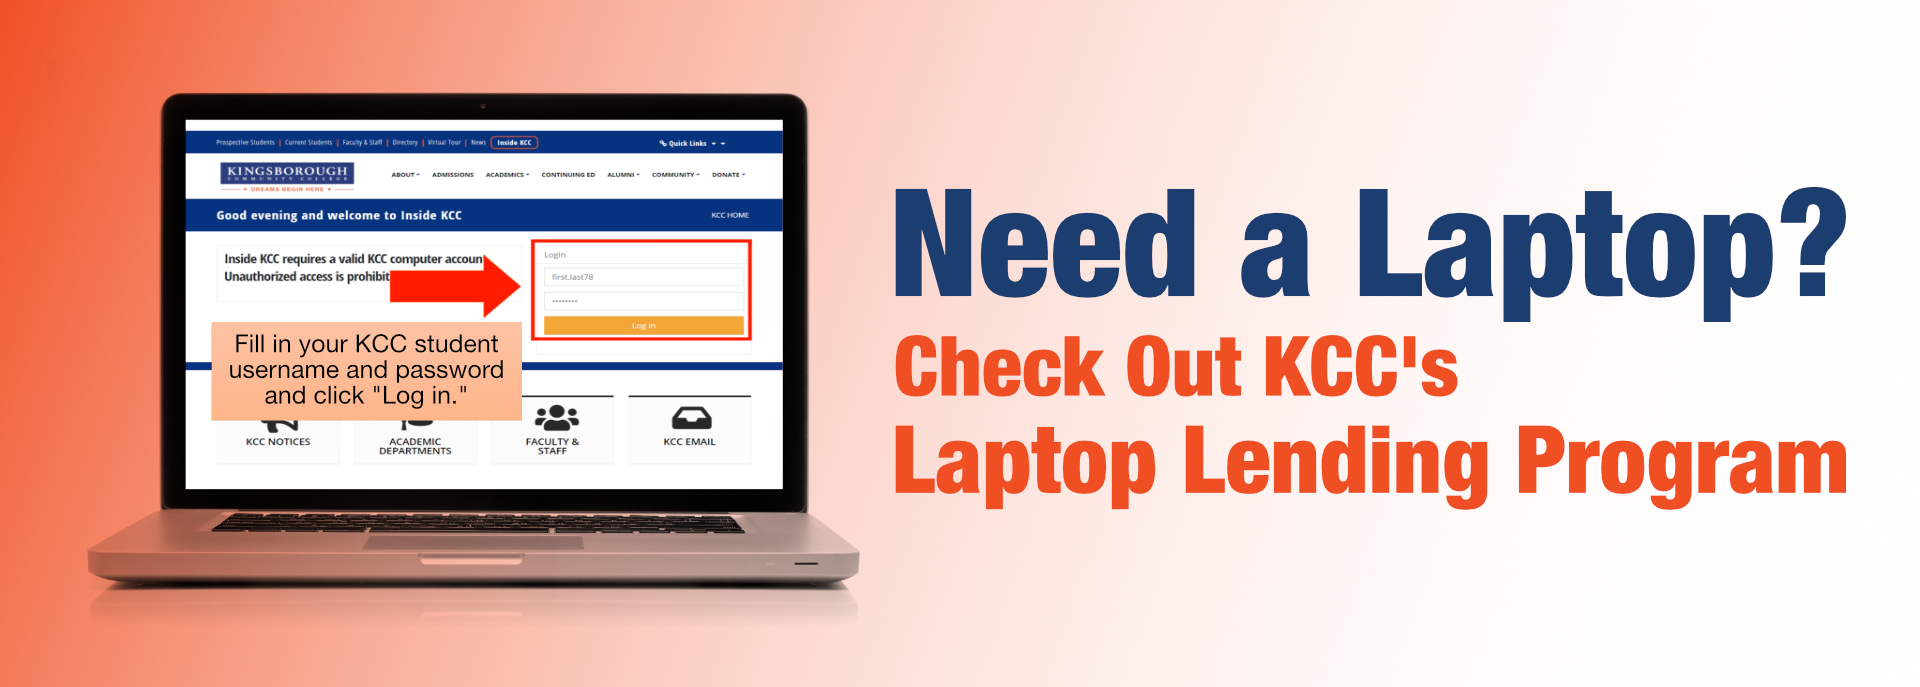 Need a Laptop? Check Out KCC's Laptop Lending Program